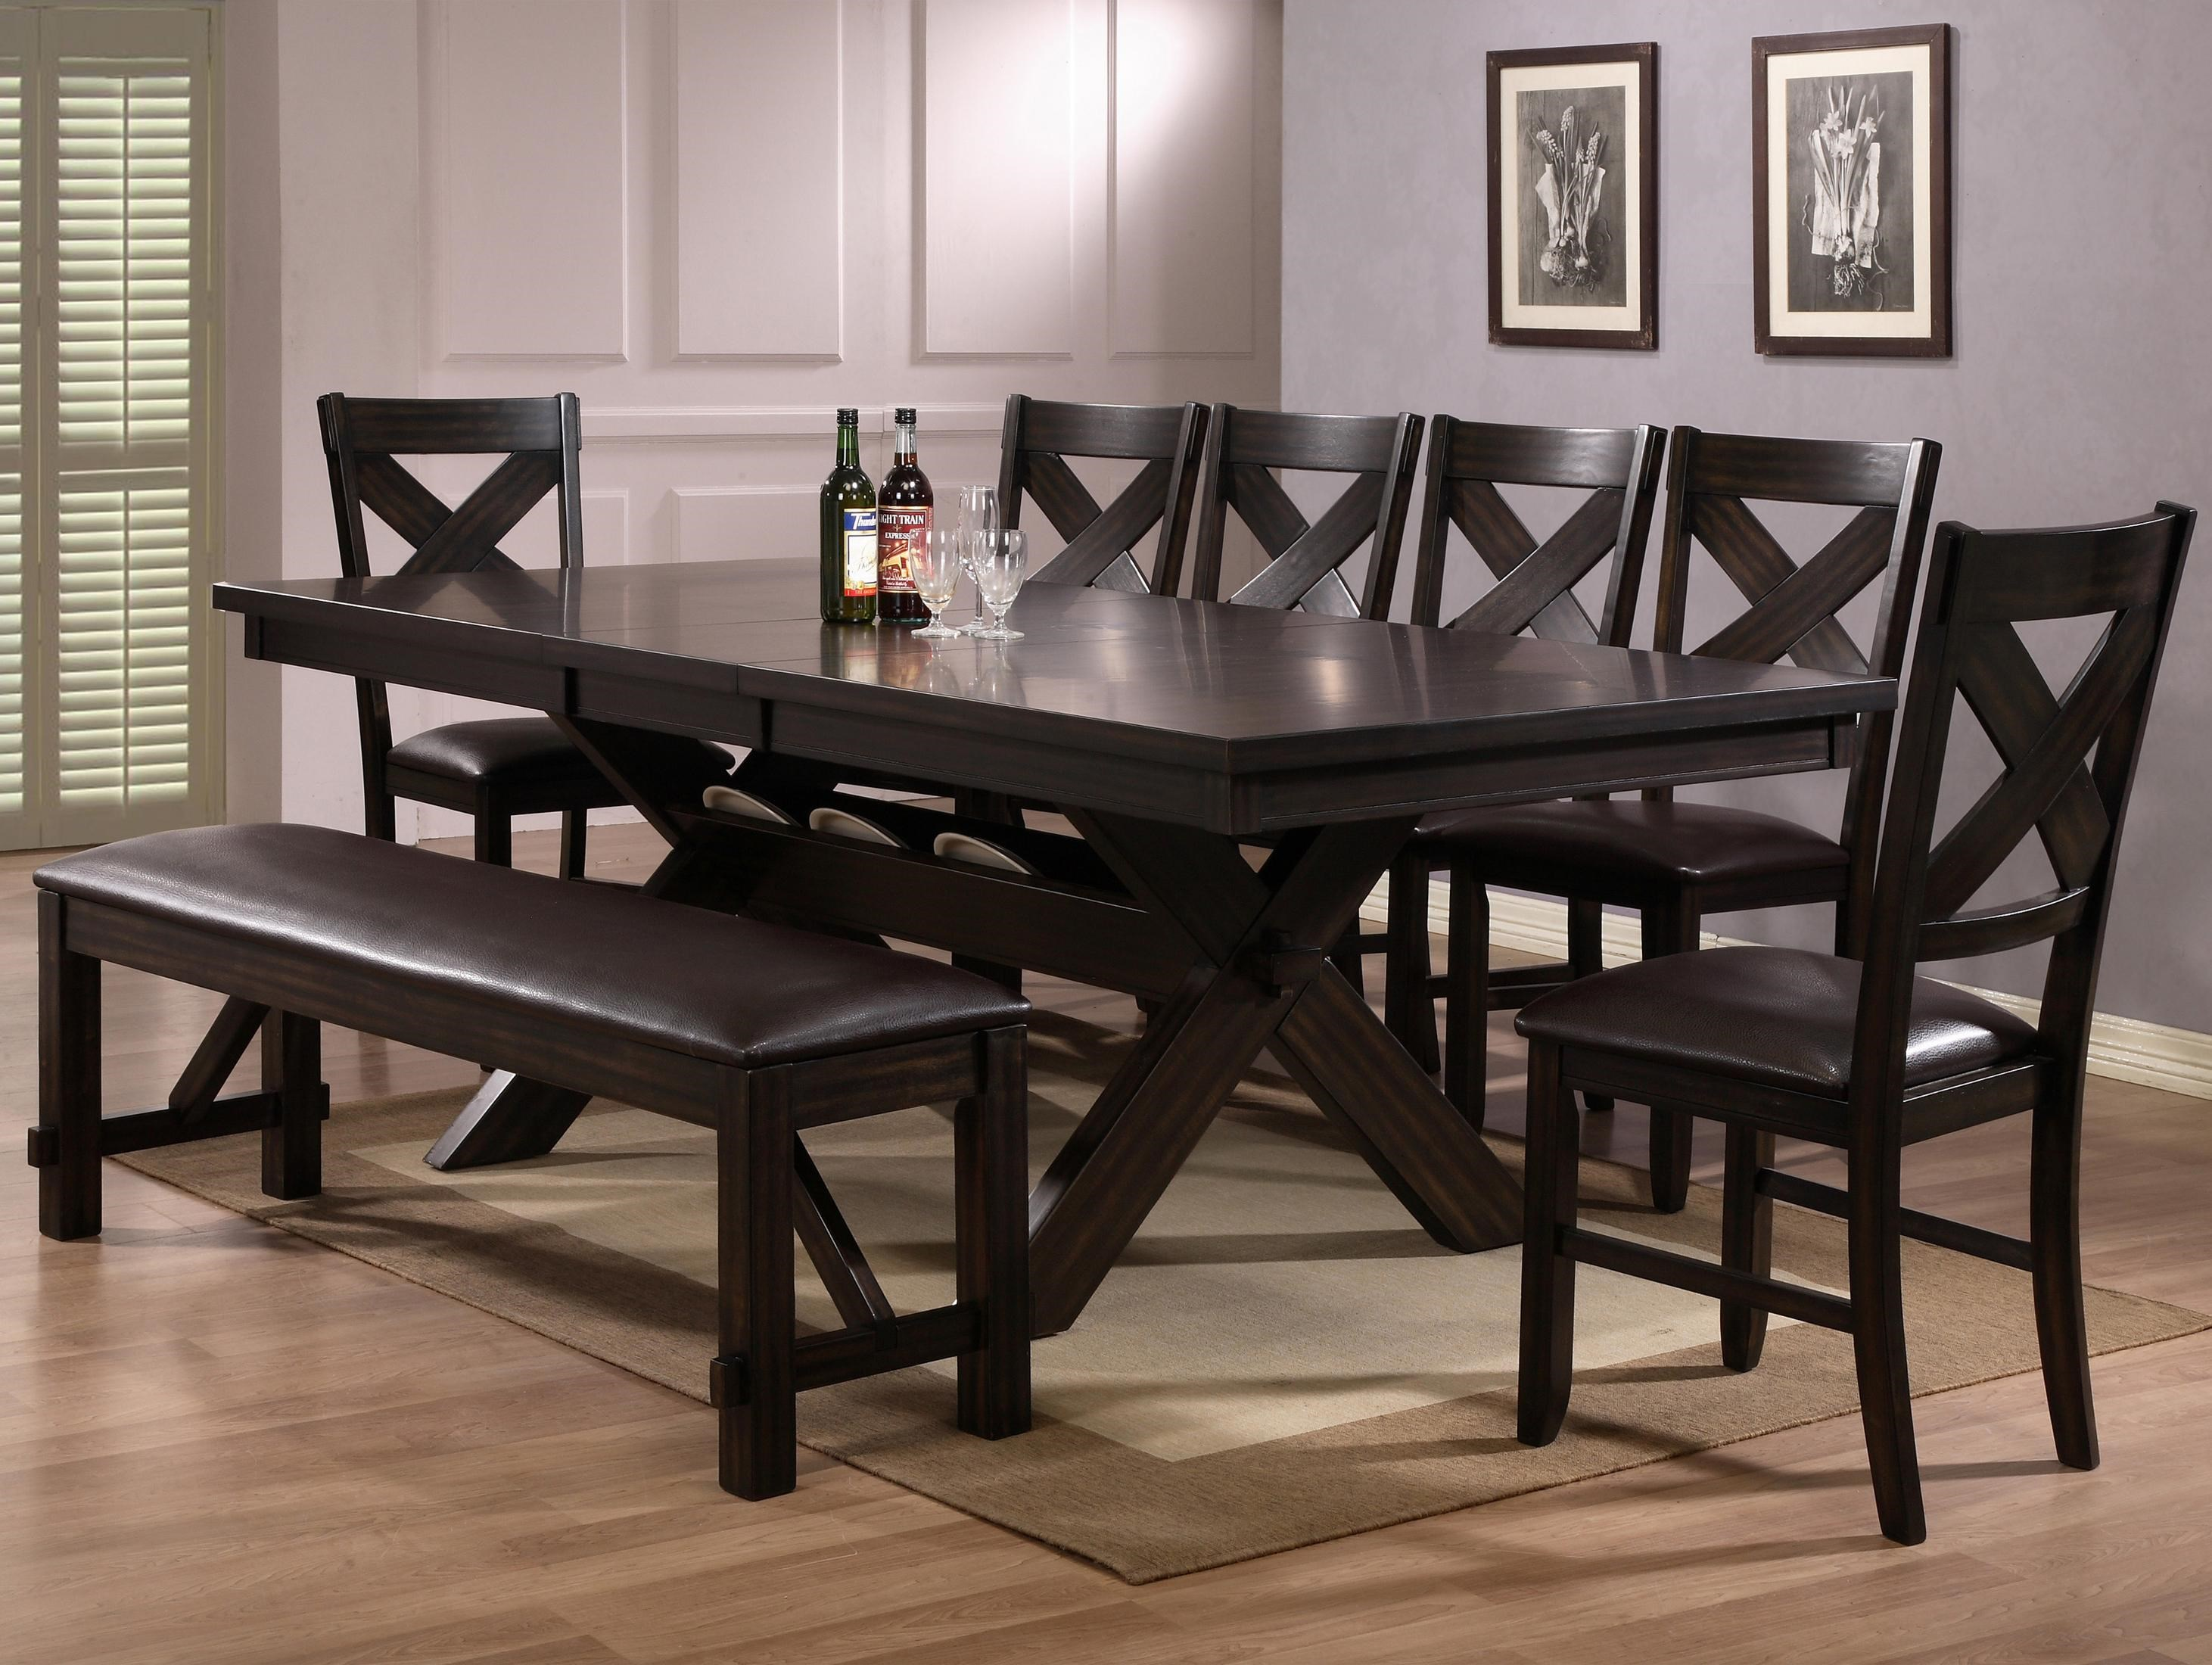 Crown Mark Havana 8 Piece Dining Table Chair \u0026 Bench Set  sc 1 st  Wilcox Furniture & 8 Piece Dining Table Chair \u0026 Bench Set - Havana by Crown Mark ...